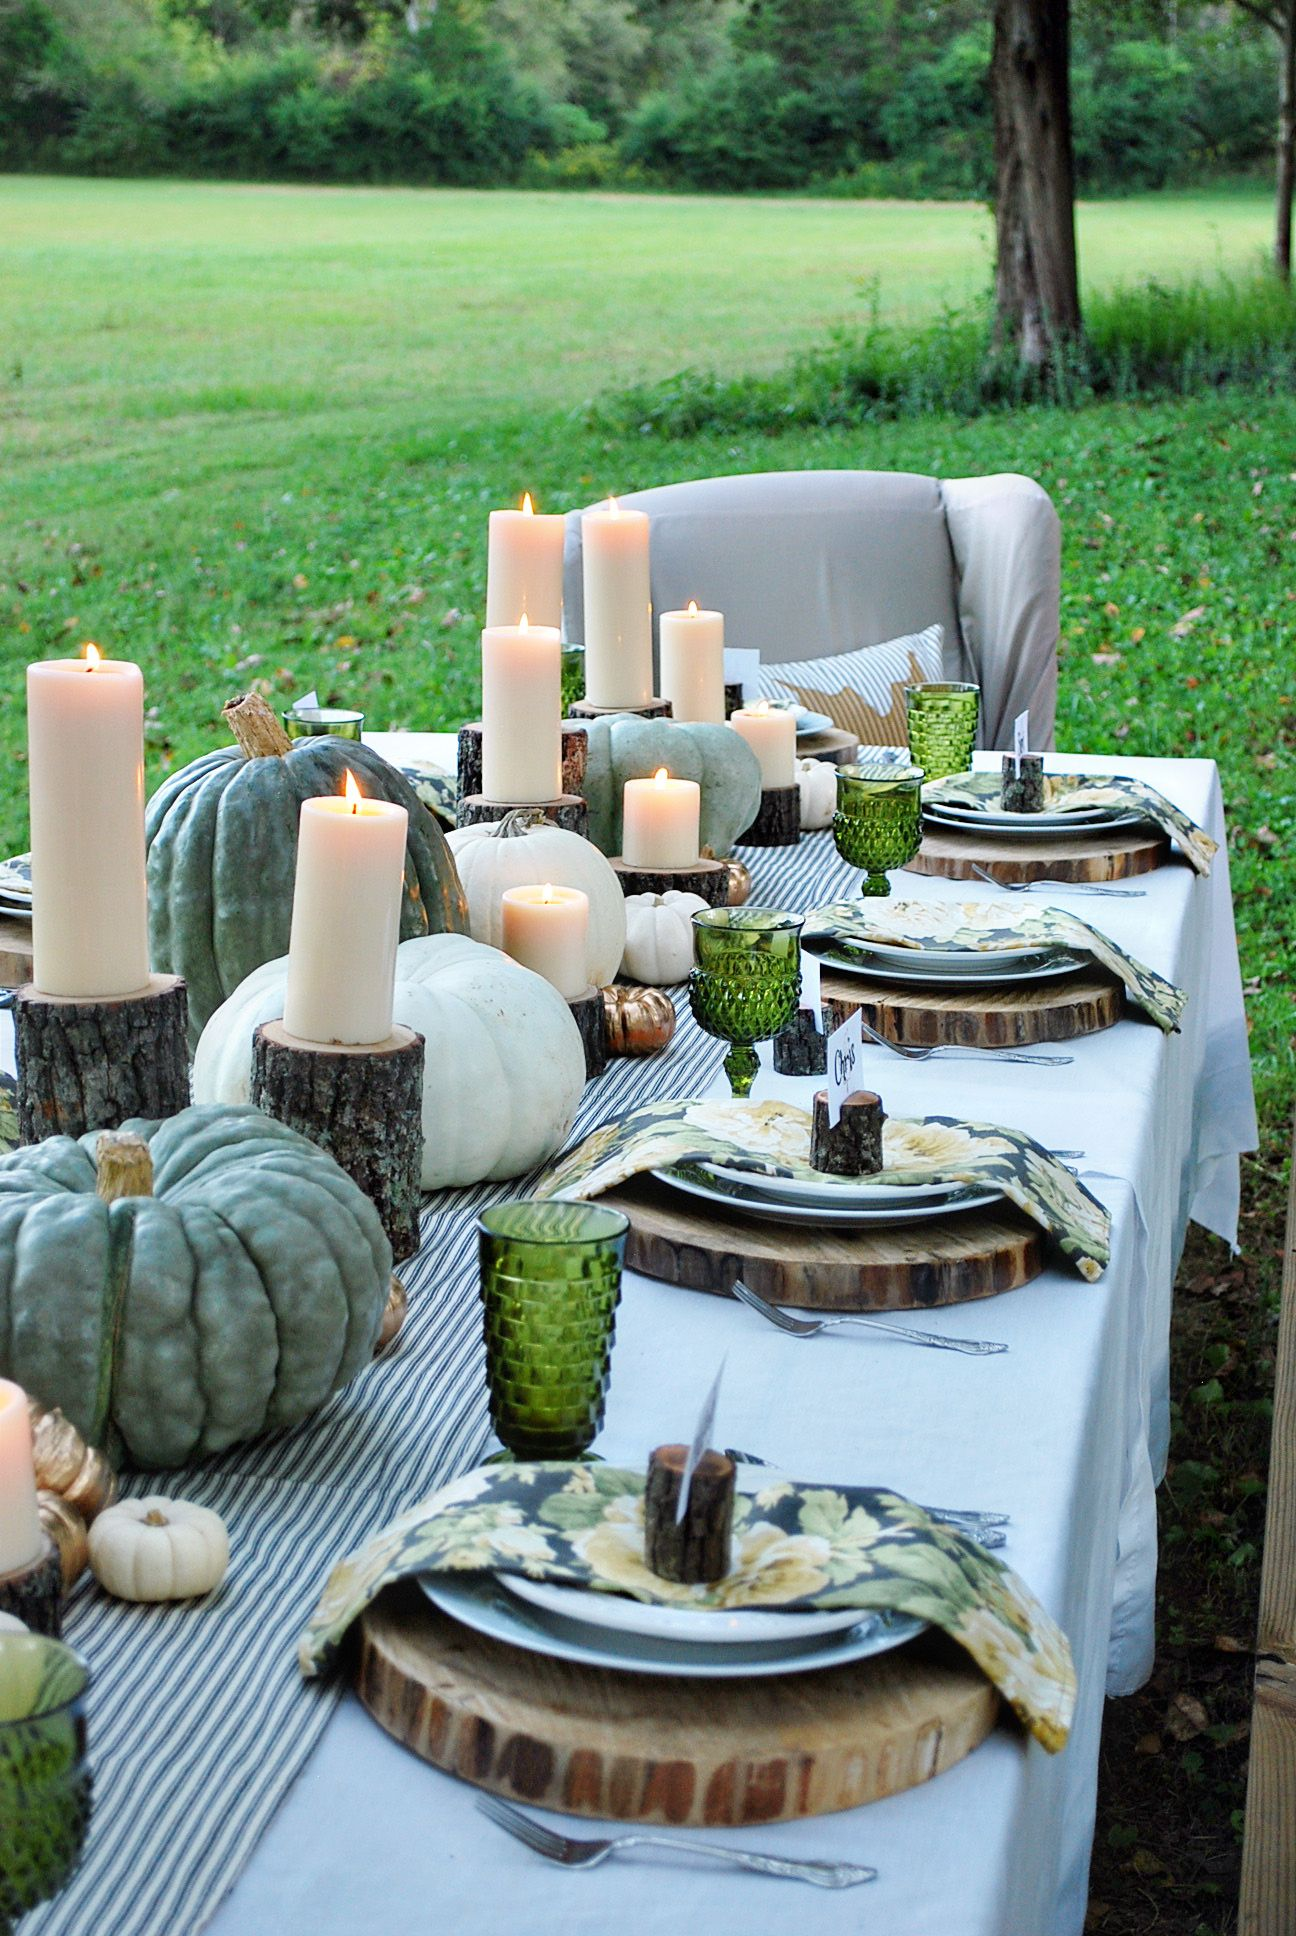 A Casa Di Babette enchanted autumn (avec images) | décoration de table automne